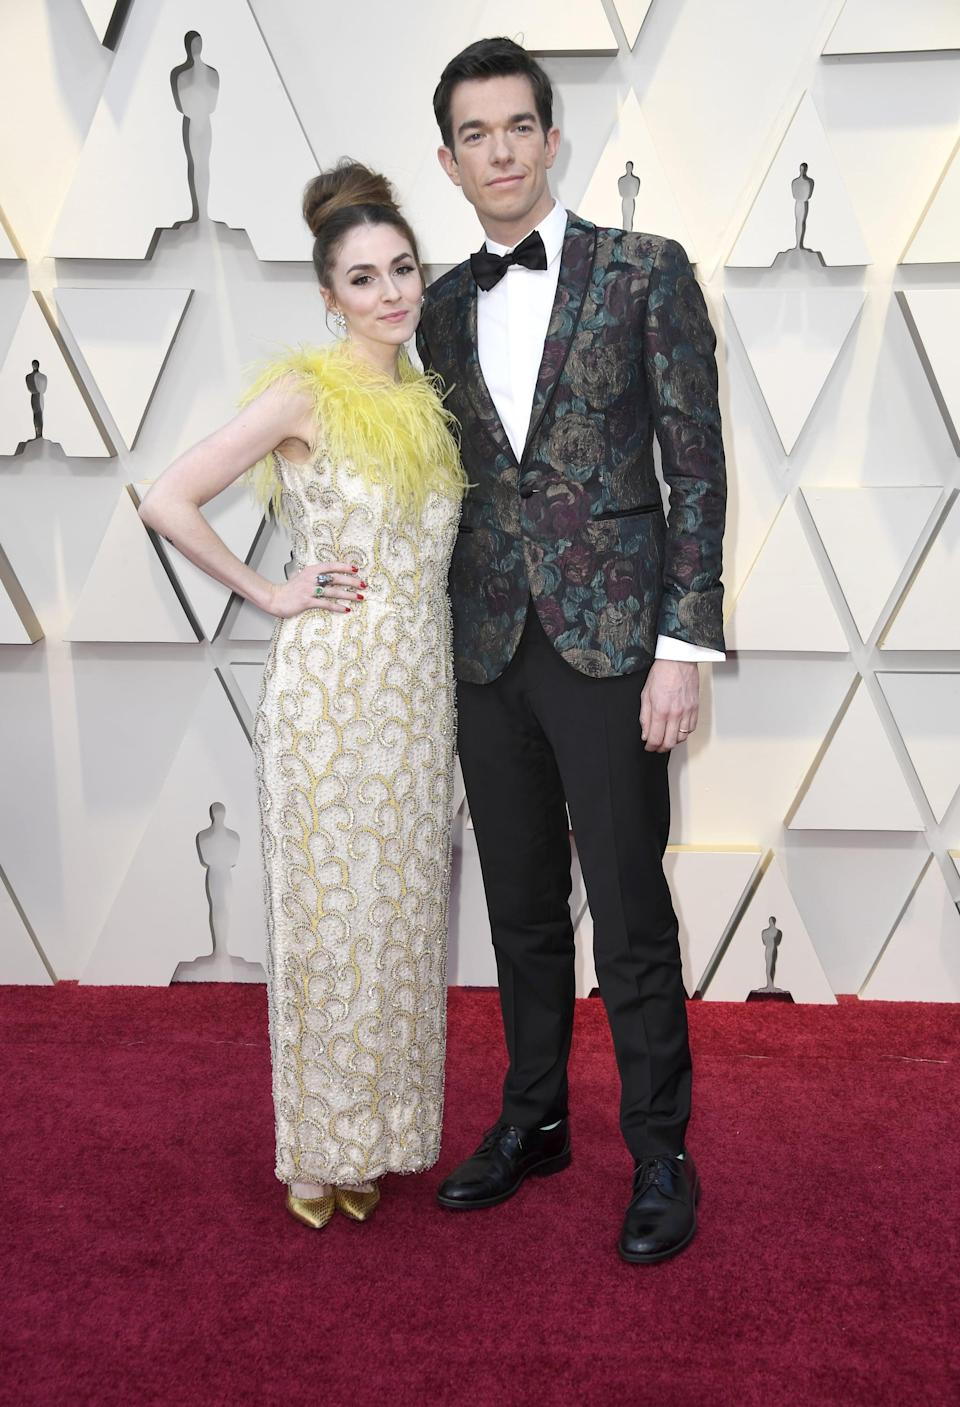 <p>Annamarie is wearing a feathered dress, and John is wearing a printed tuxedo.</p>